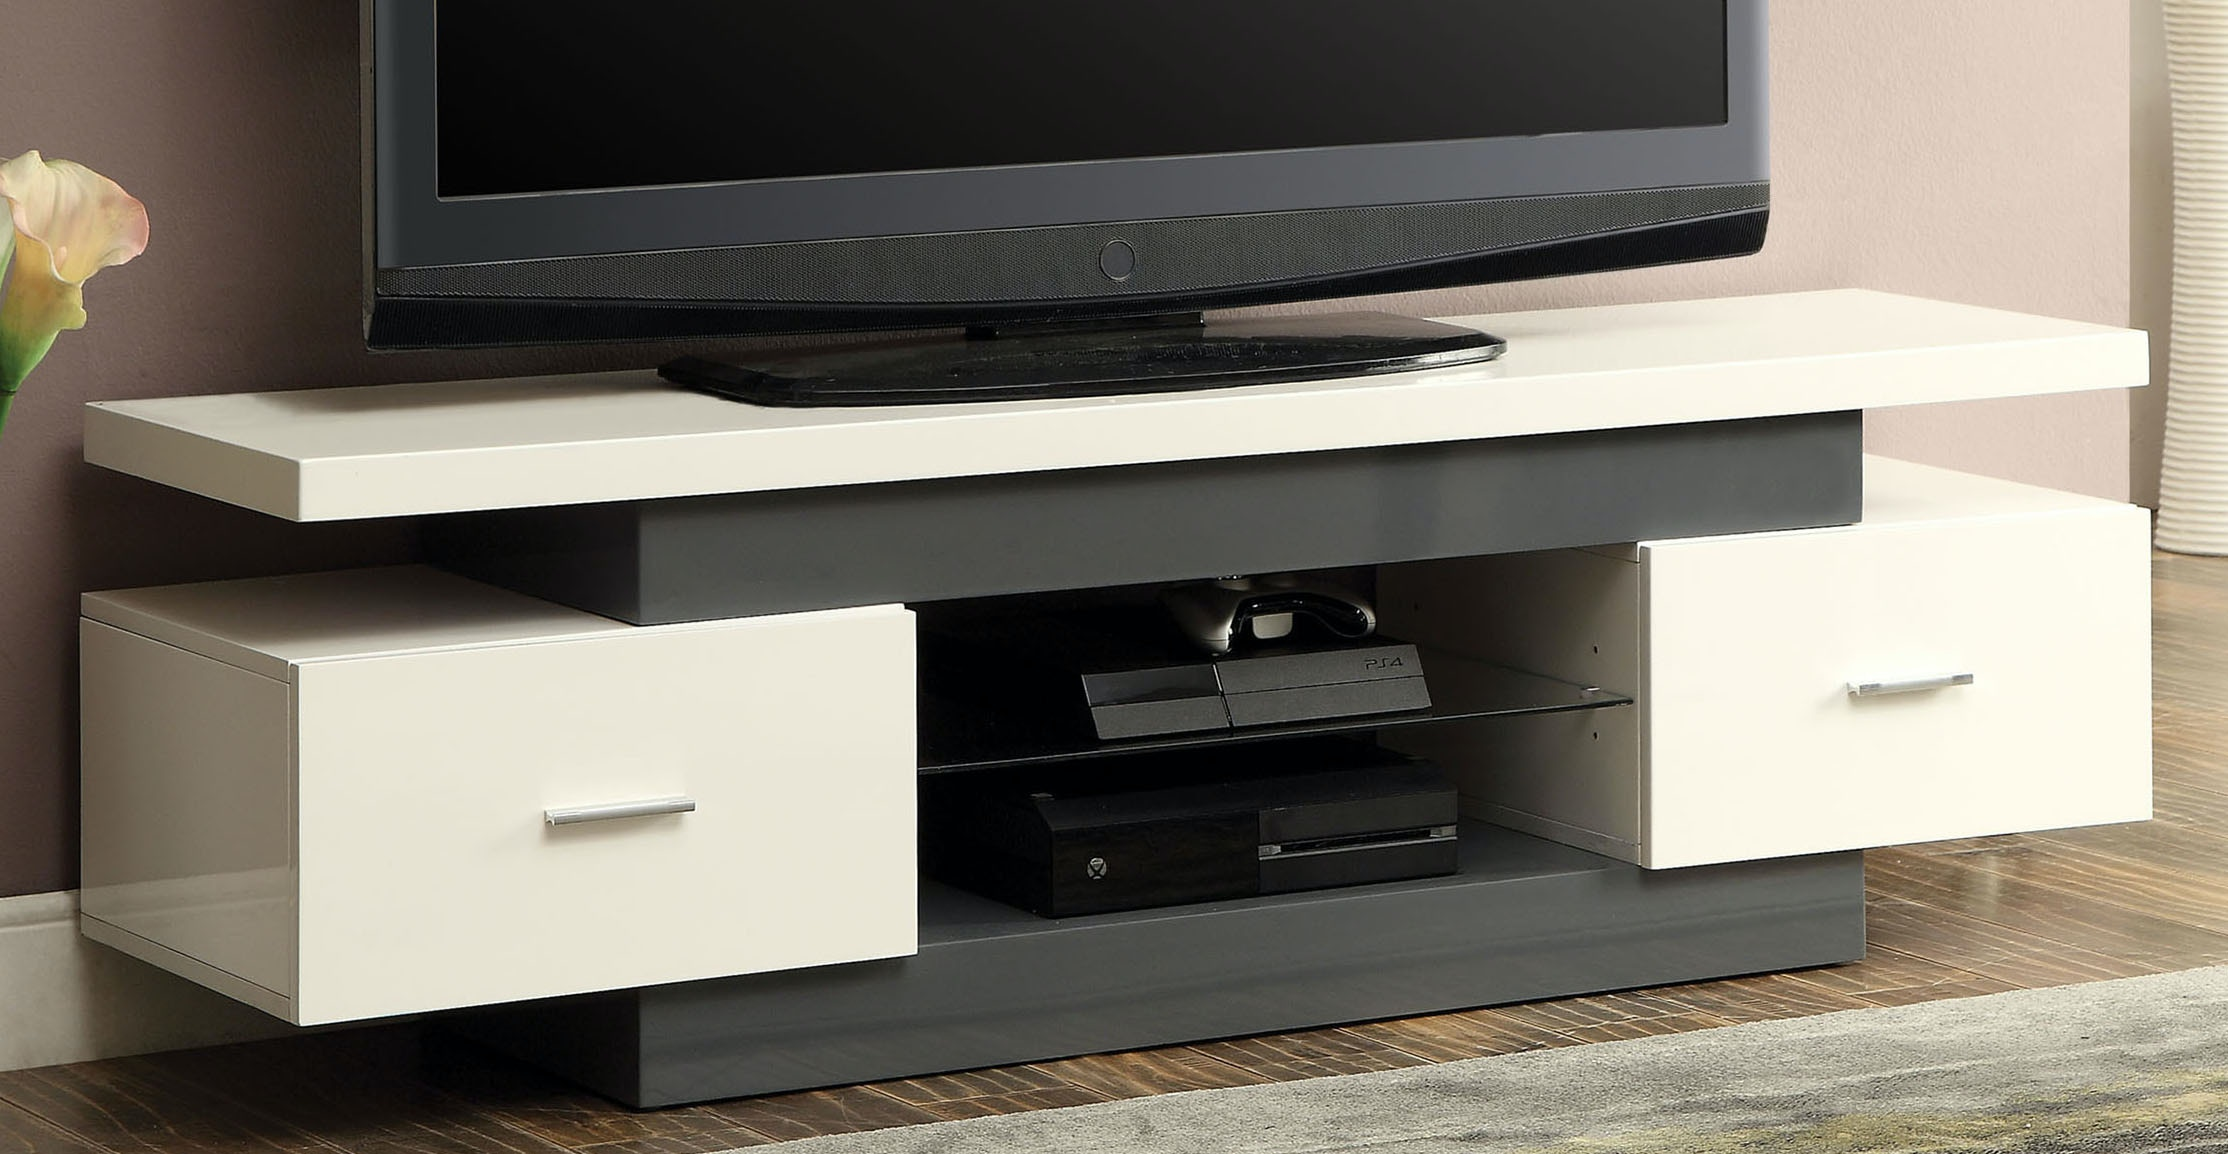 Acme Furniture Home Entertainment Tv Stand 91302 The Furniture